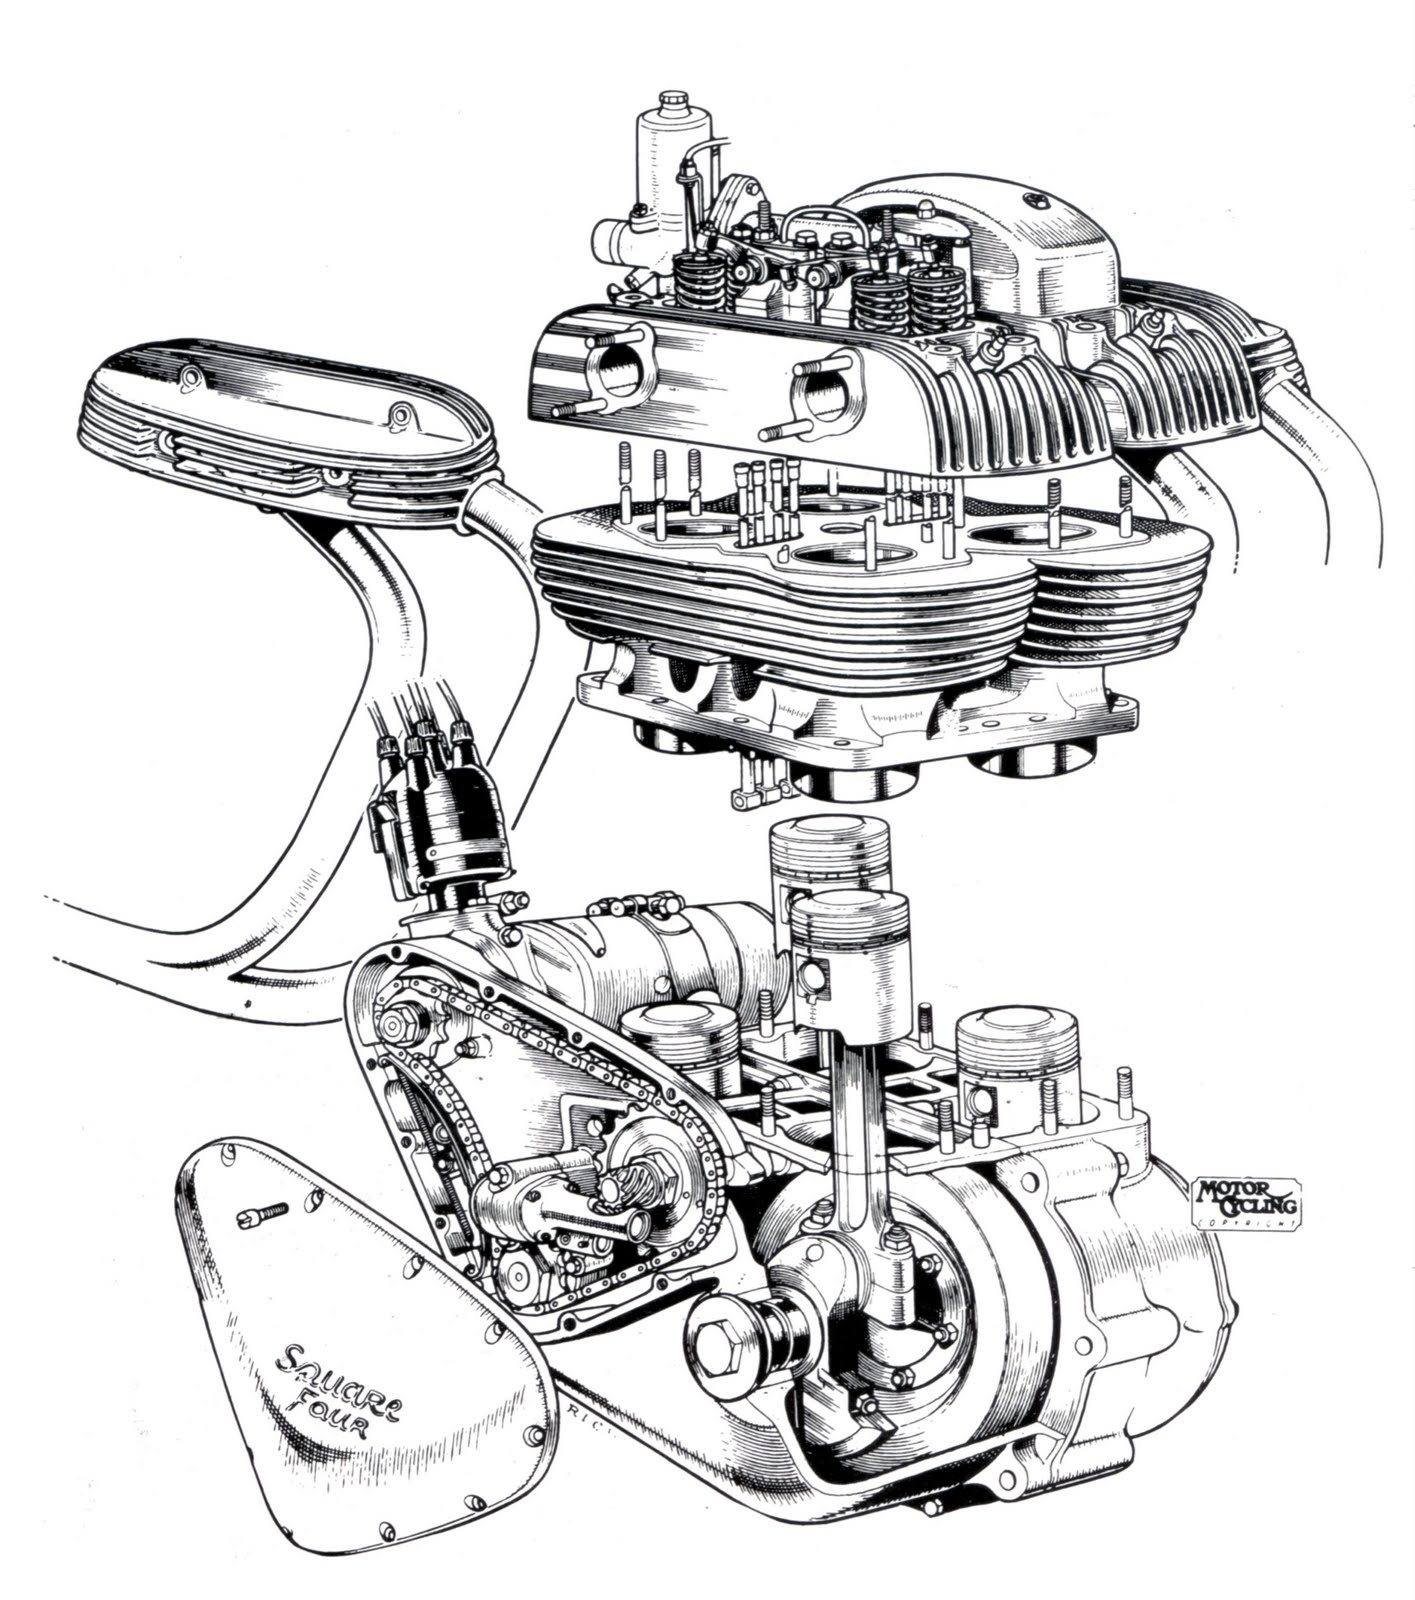 Ariel Square Four Cool Engine Cutaway Drawing on Motorcycle Fuel Tanks